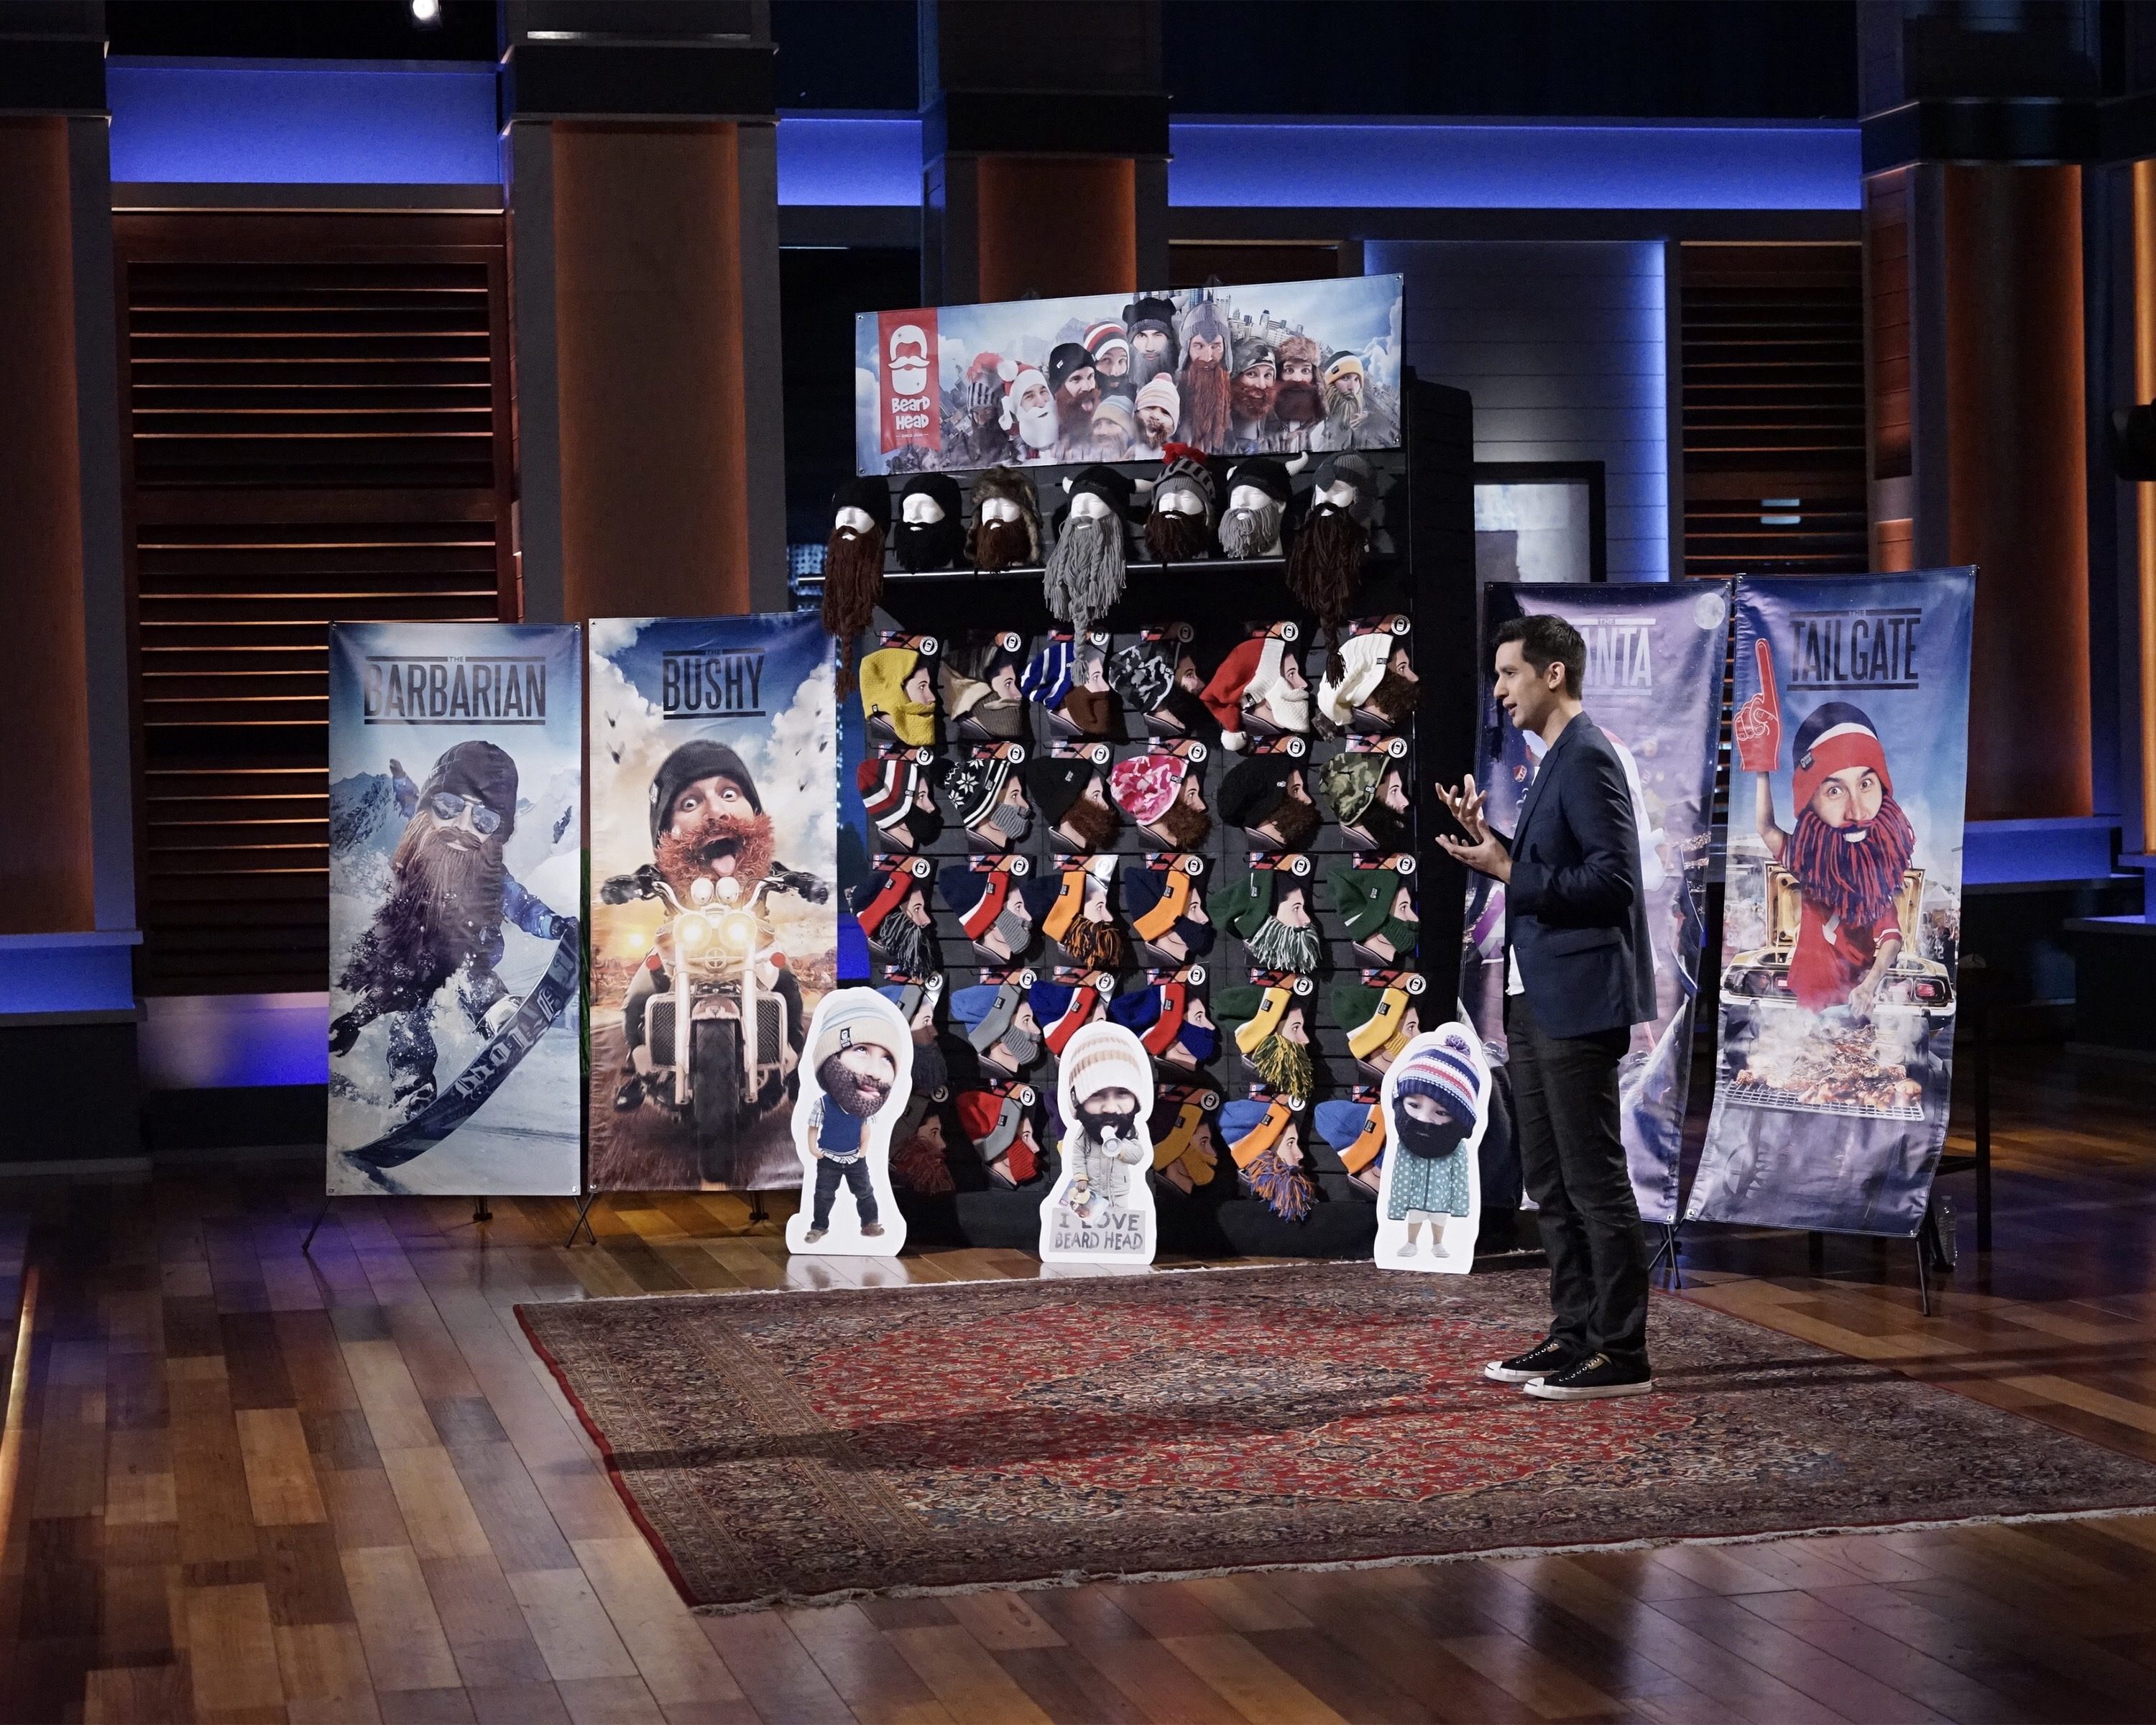 David and Beard Head founder appeared on Shark Tank in 2015